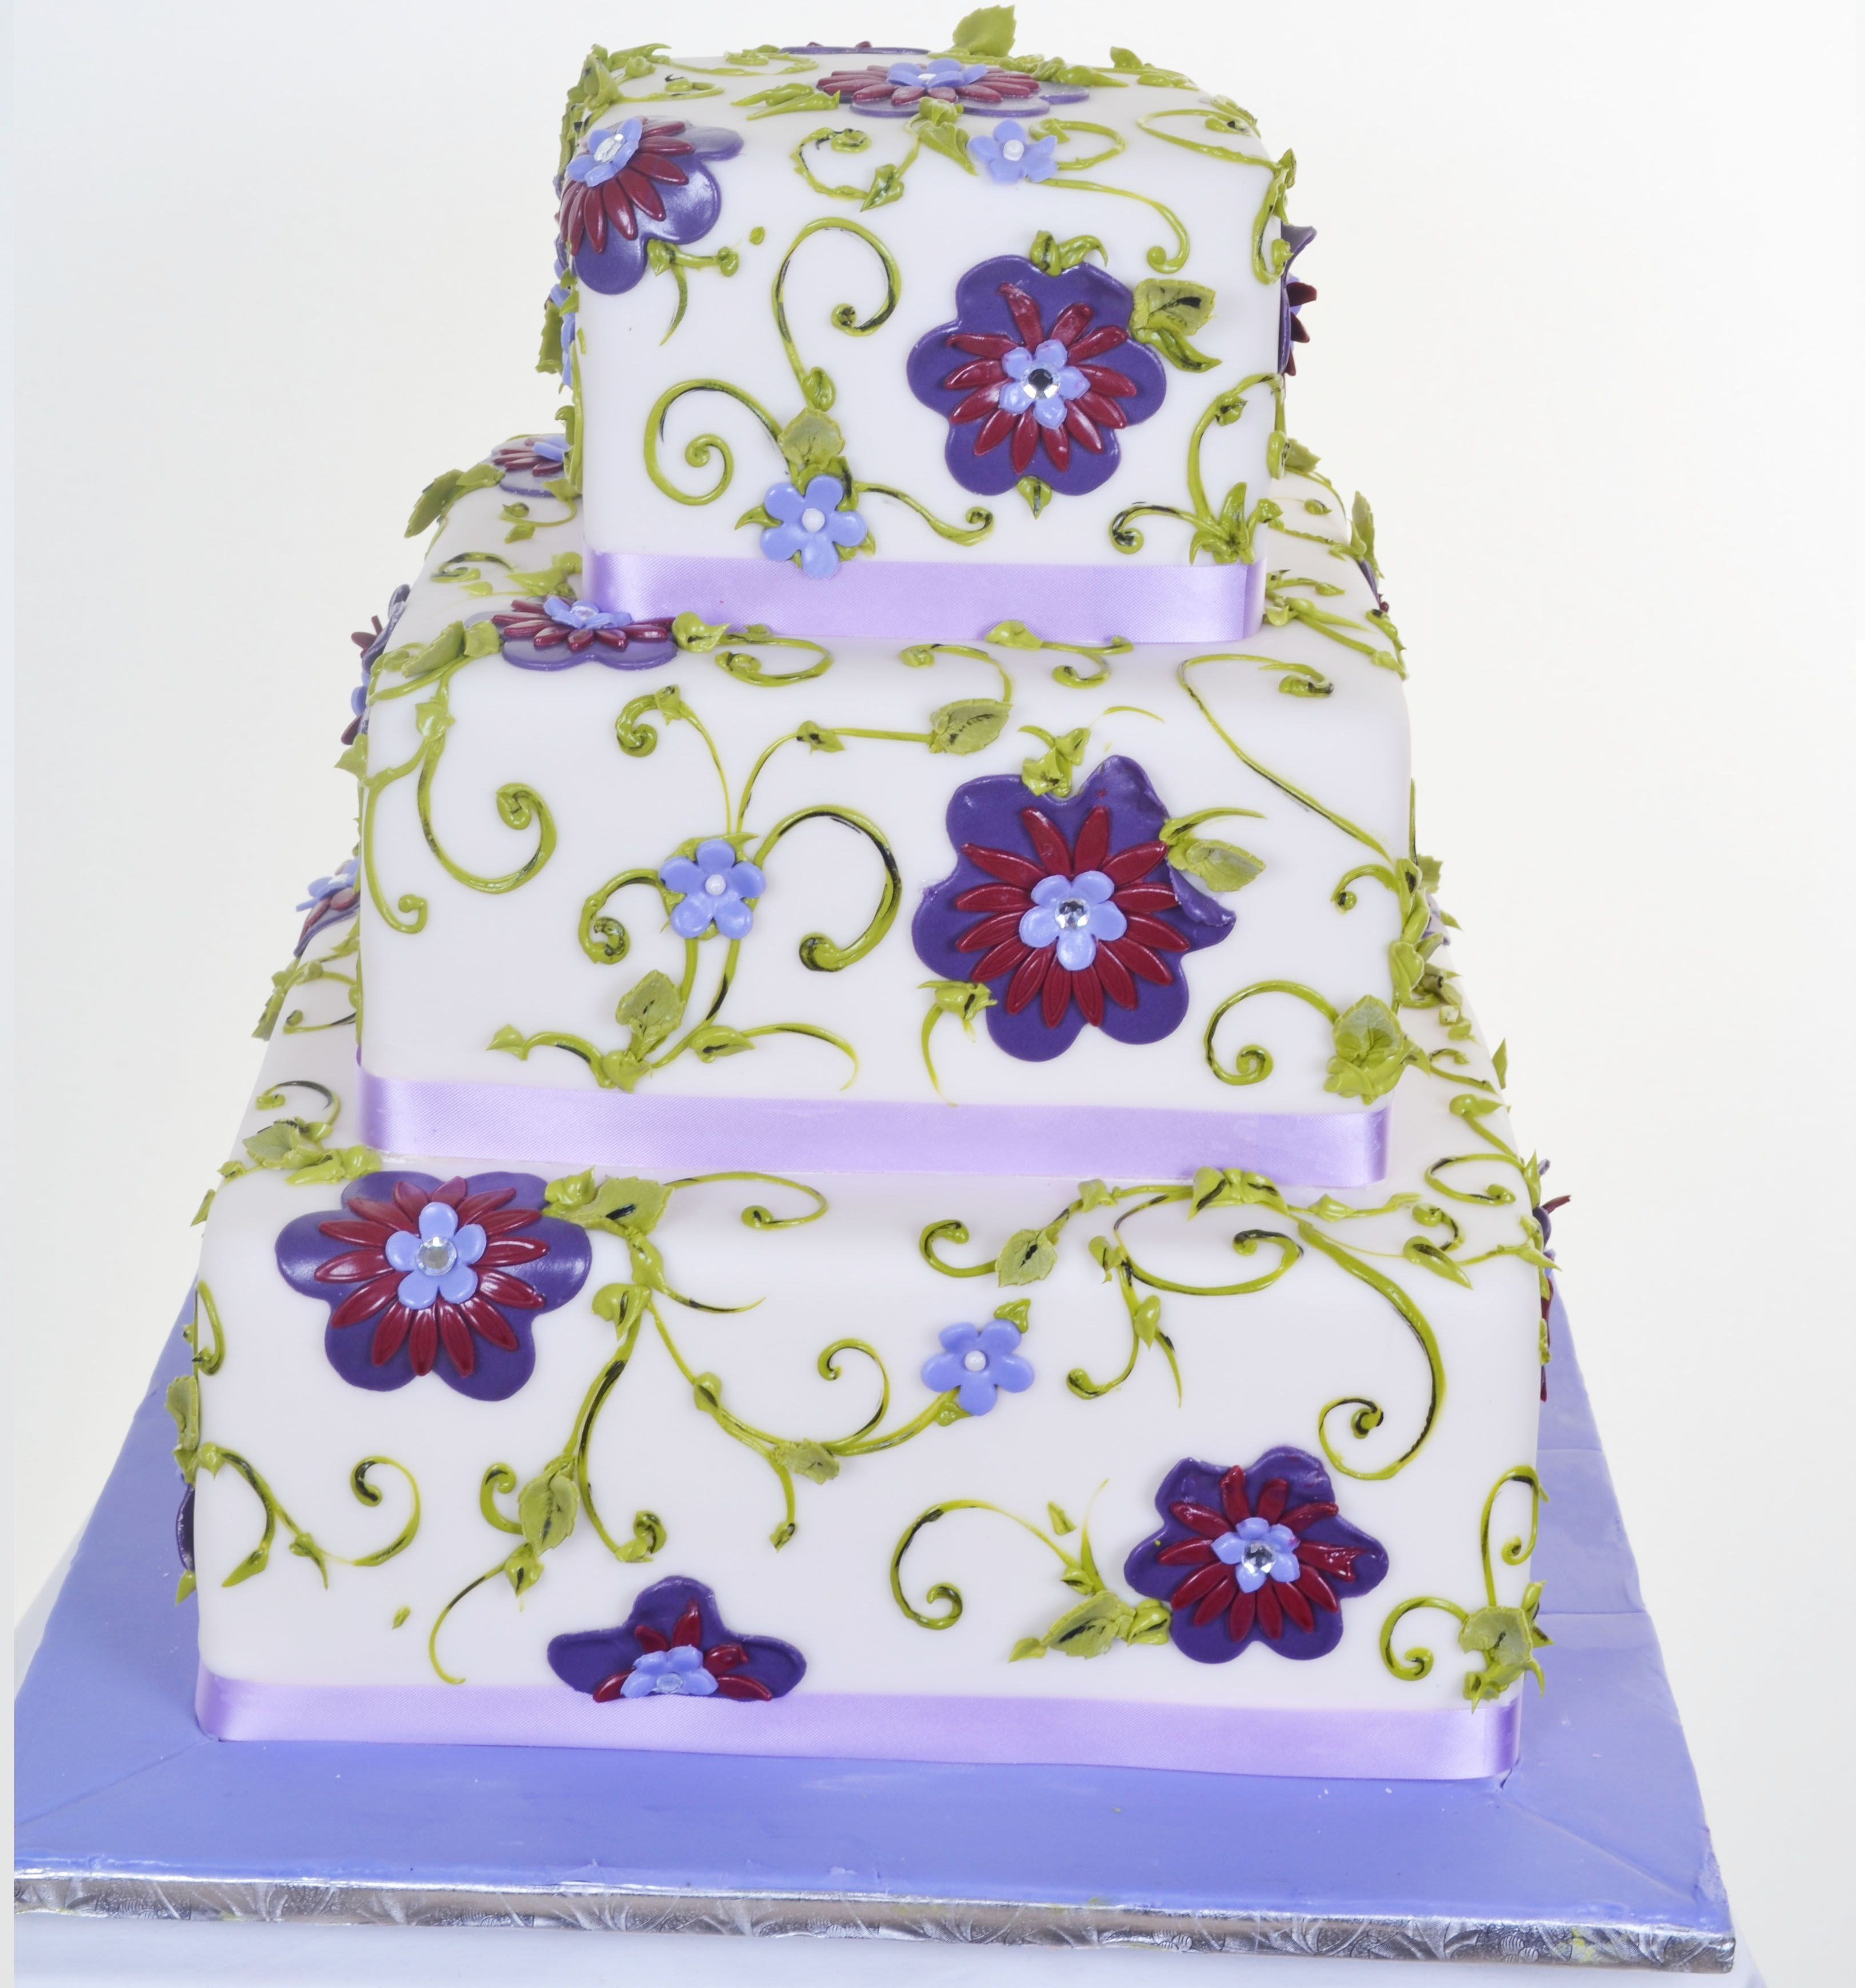 Pin by Dyan London on Cakes Highly Decorated Cake Las